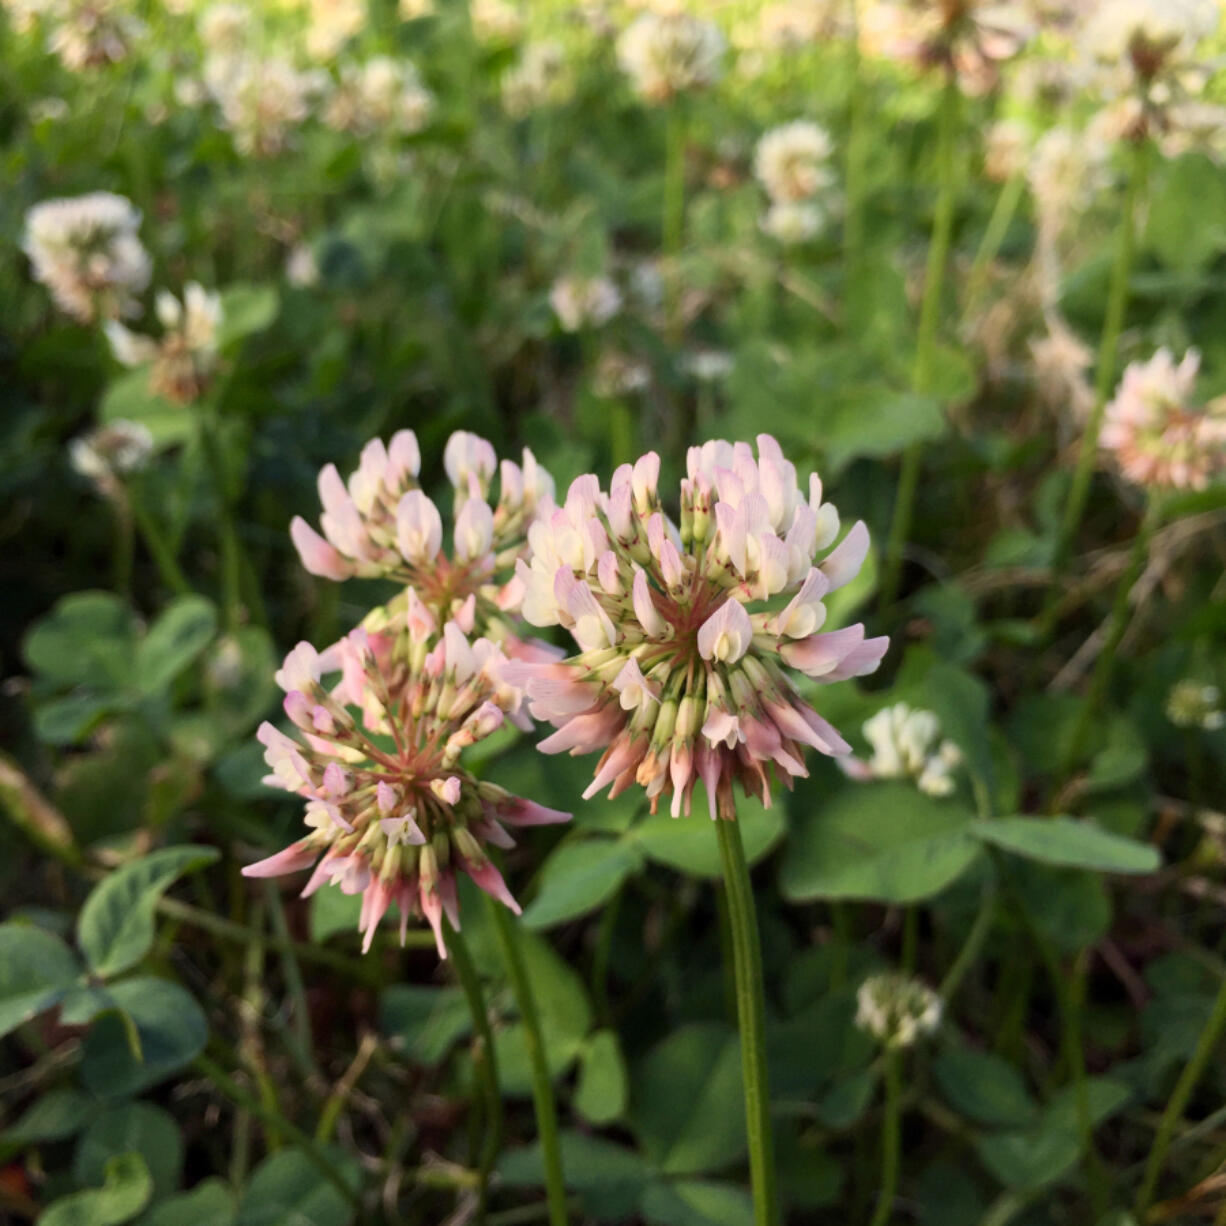 The pink-tinged blossoms of white clover are delicately sweet and can be added to baked goods.